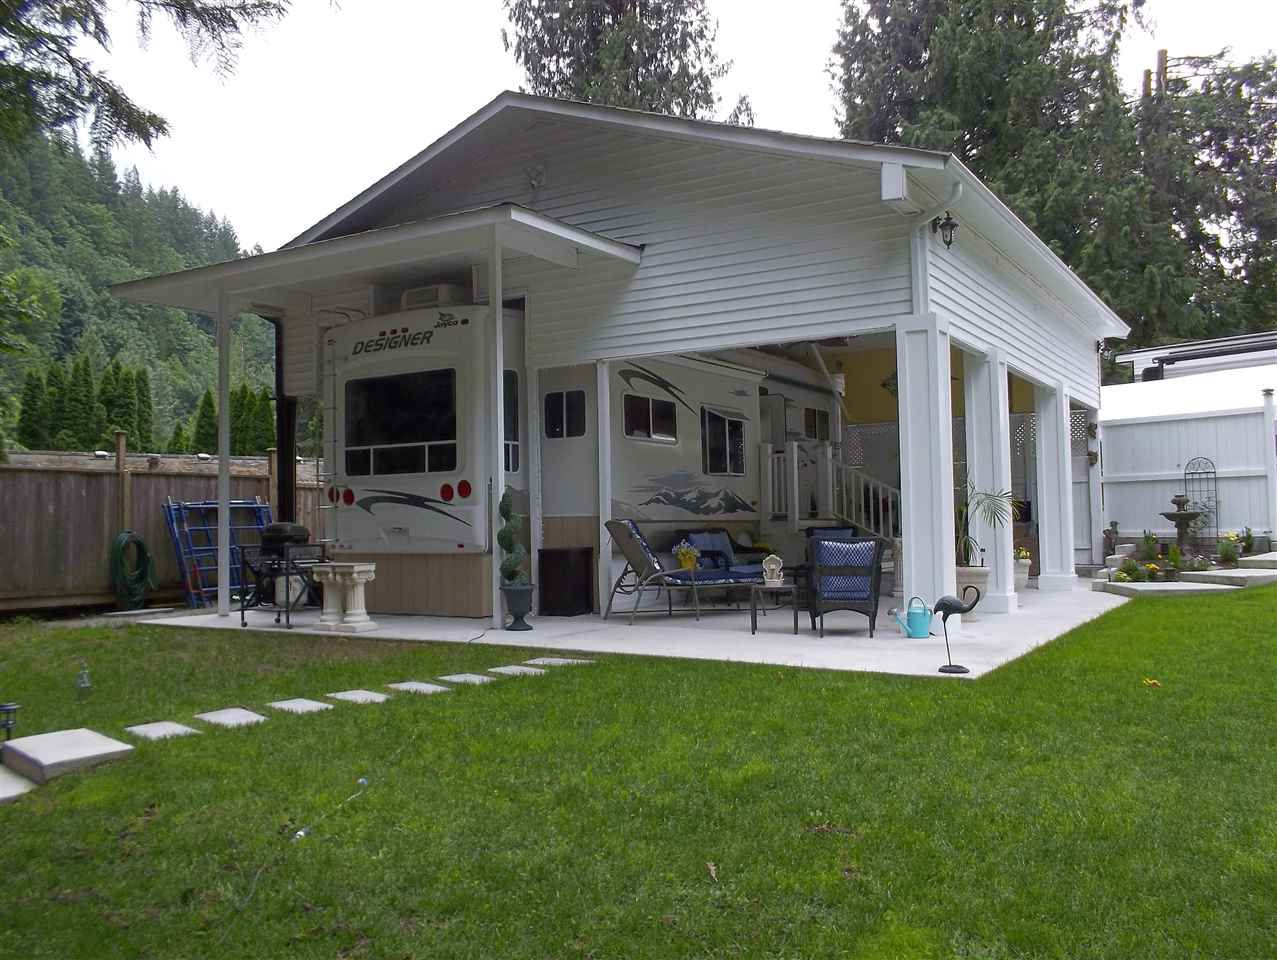 """Main Photo: 4 1650 COLUMBIA VALLEY Road: Columbia Valley Land for sale in """"LEISURE VALLEY"""" (Cultus Lake)  : MLS®# R2381148"""